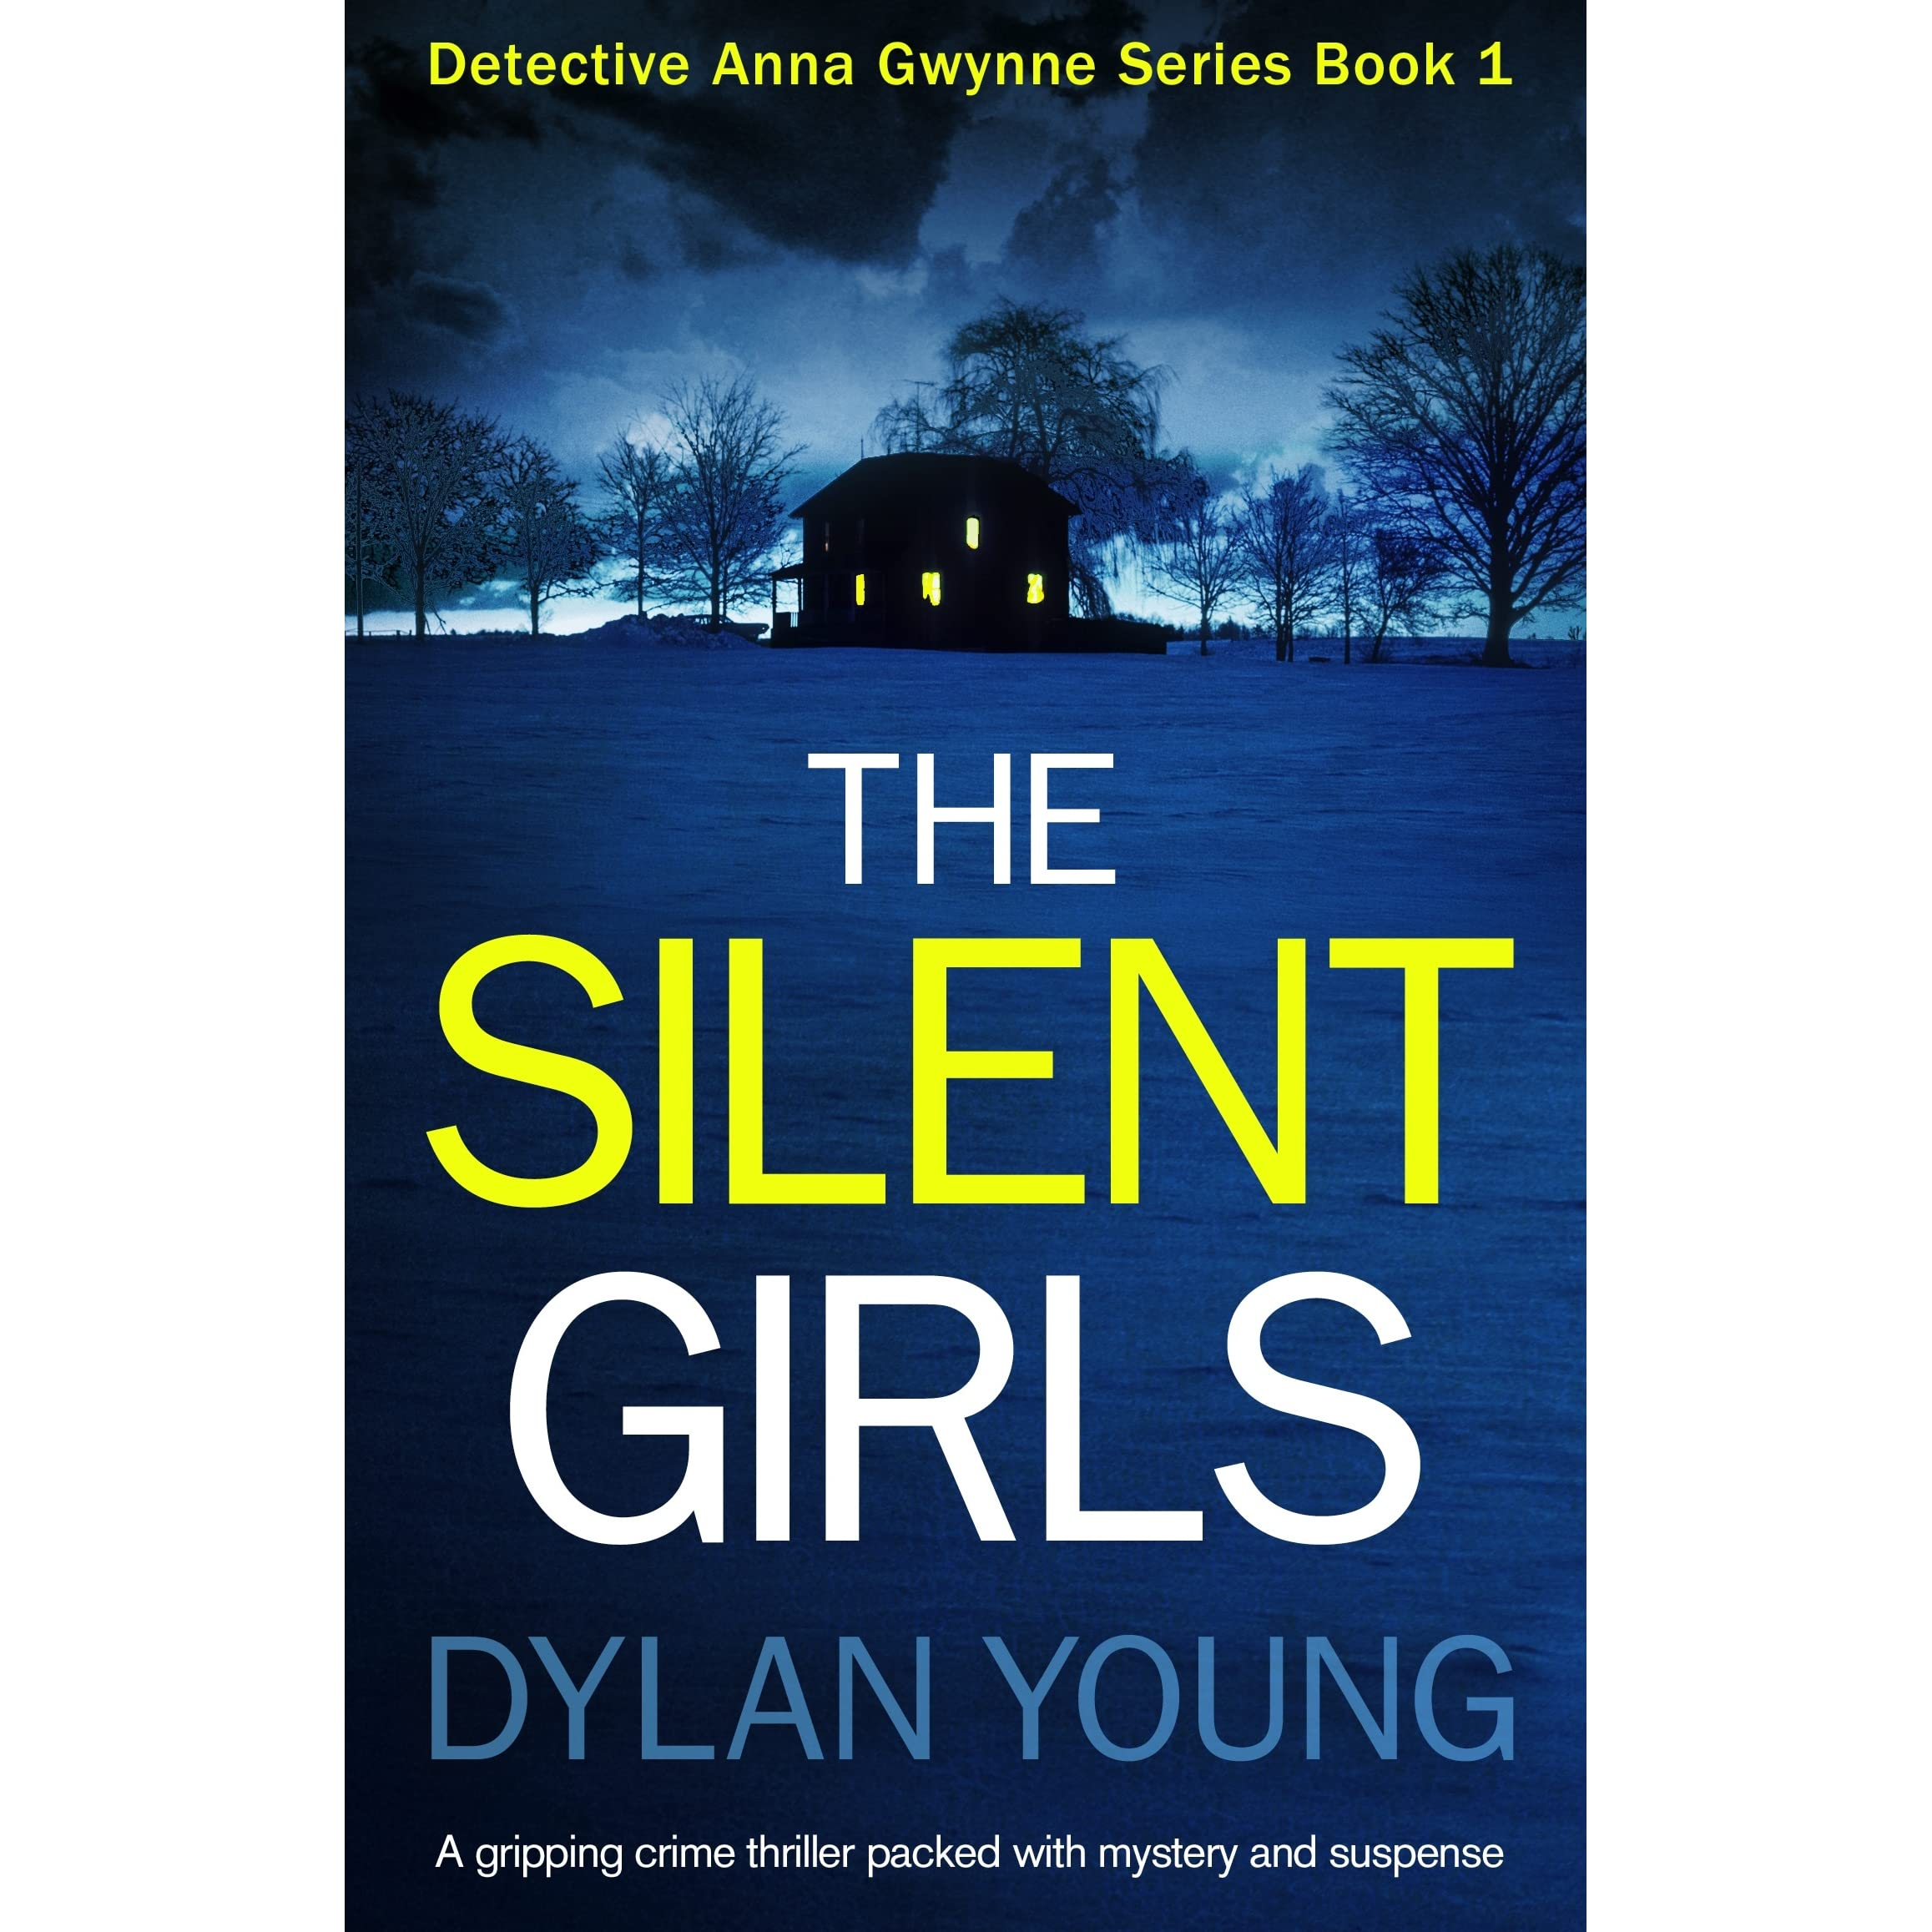 Suspense and thriller teen books